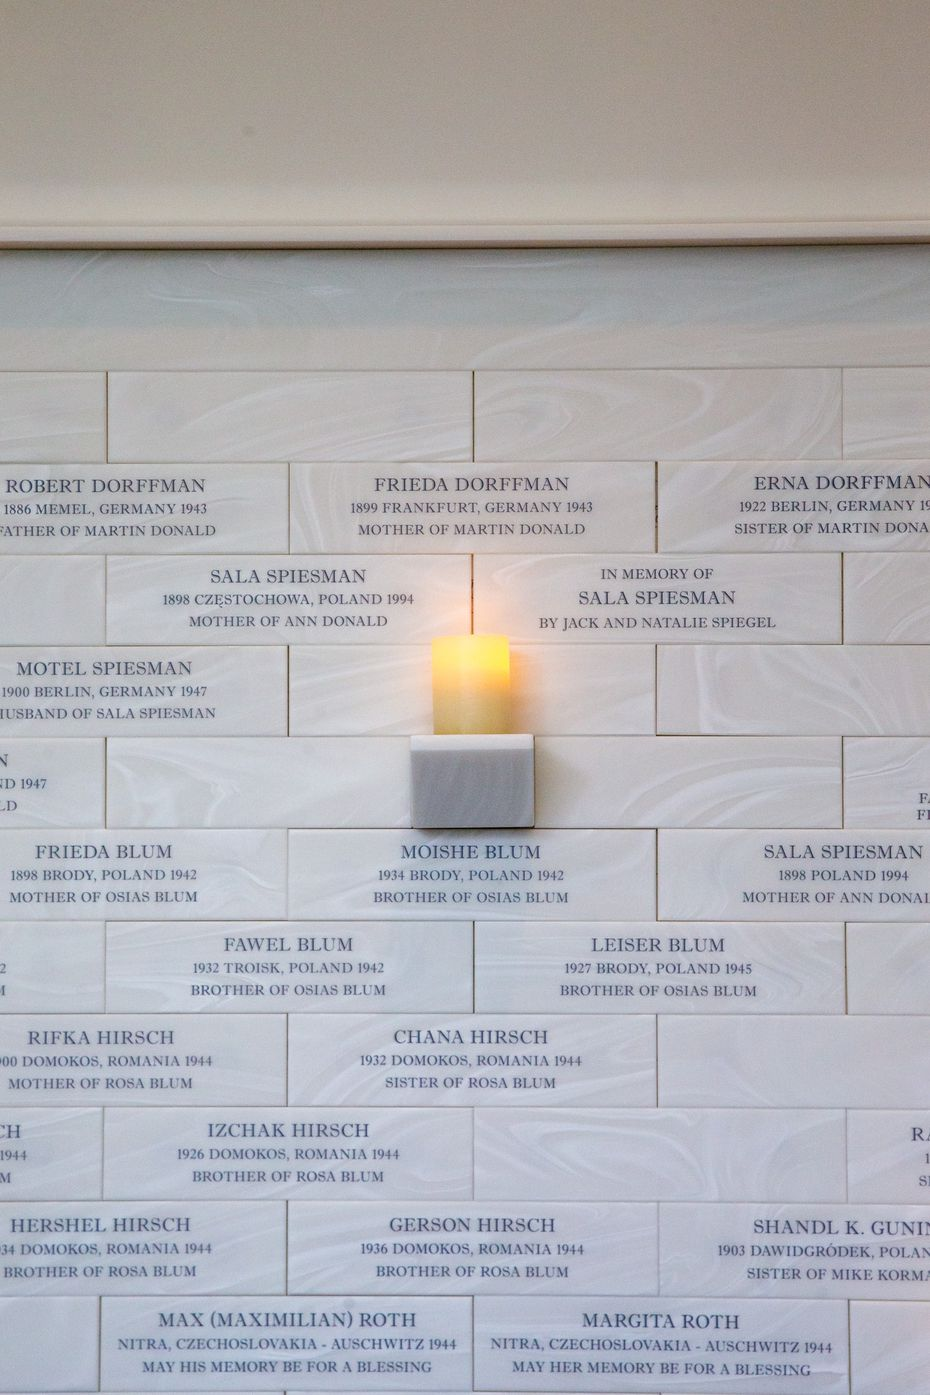 Names of Holocaust victims, survivors and their family members are carved in stone in the Memorial and Reflection Room in the new Dallas Holocaust and Human Rights Museum.